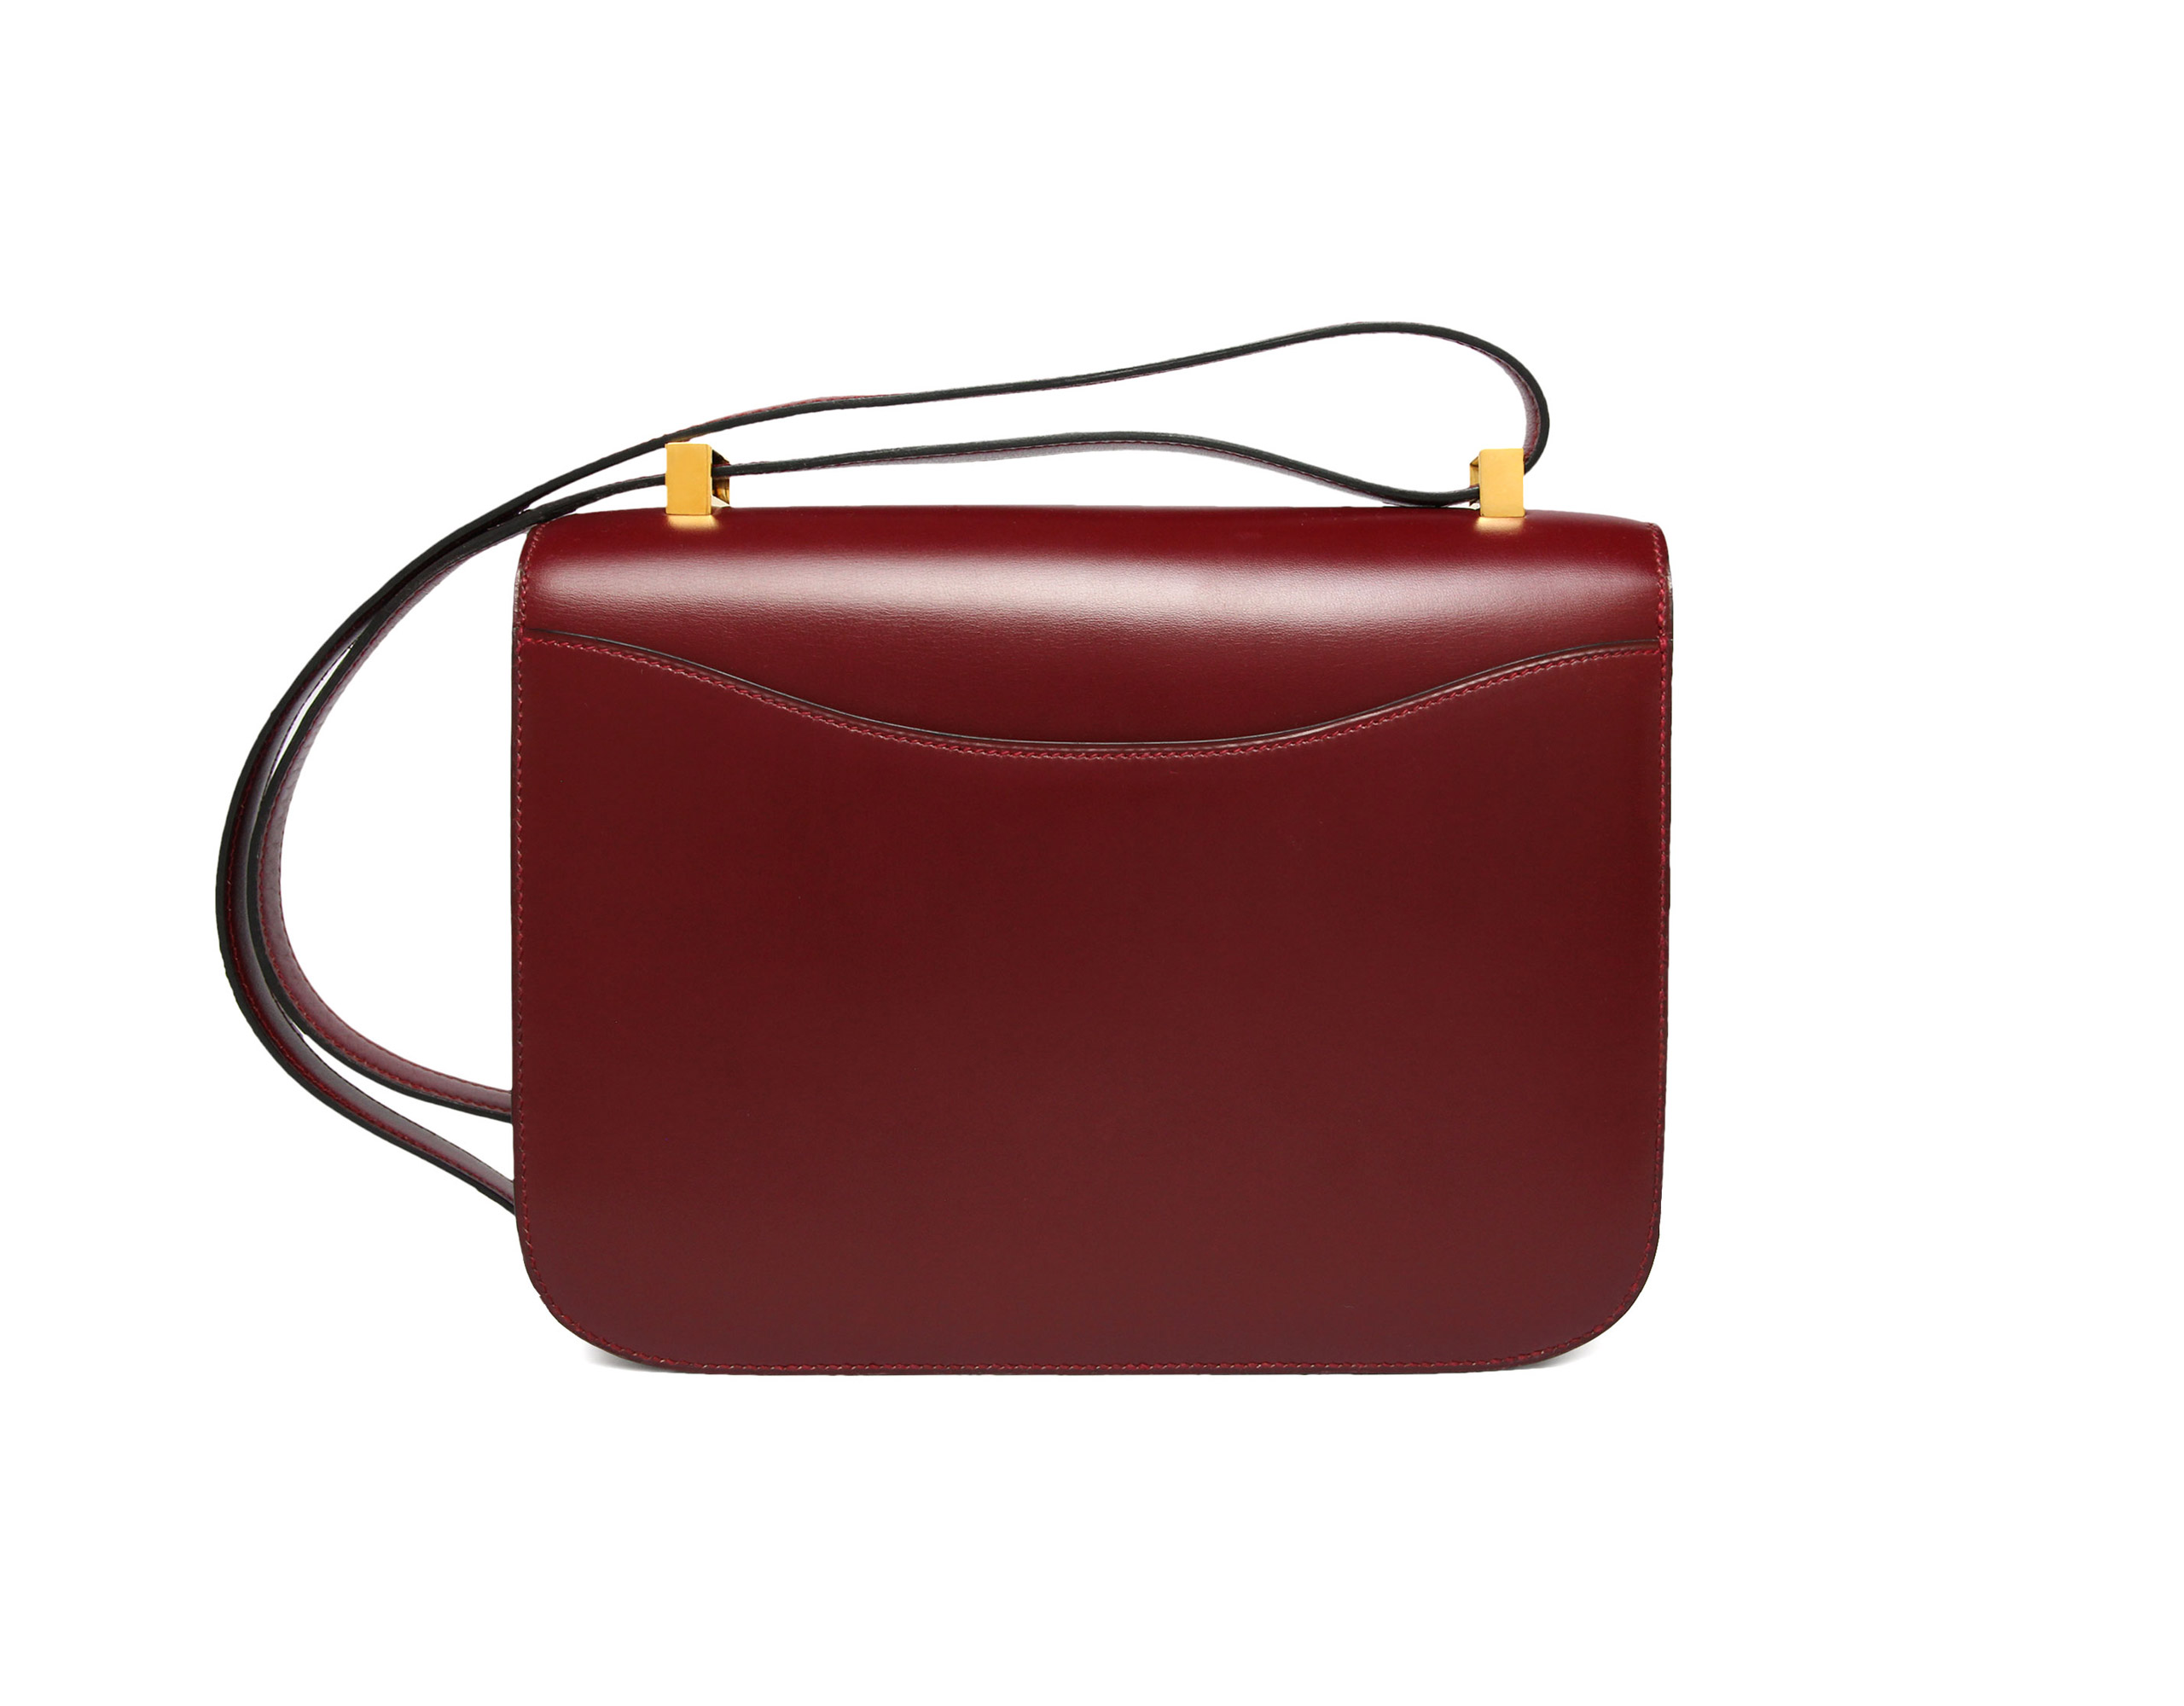 Vintage 23cm Constance in Rouge Hermes Box with Gold Hardware